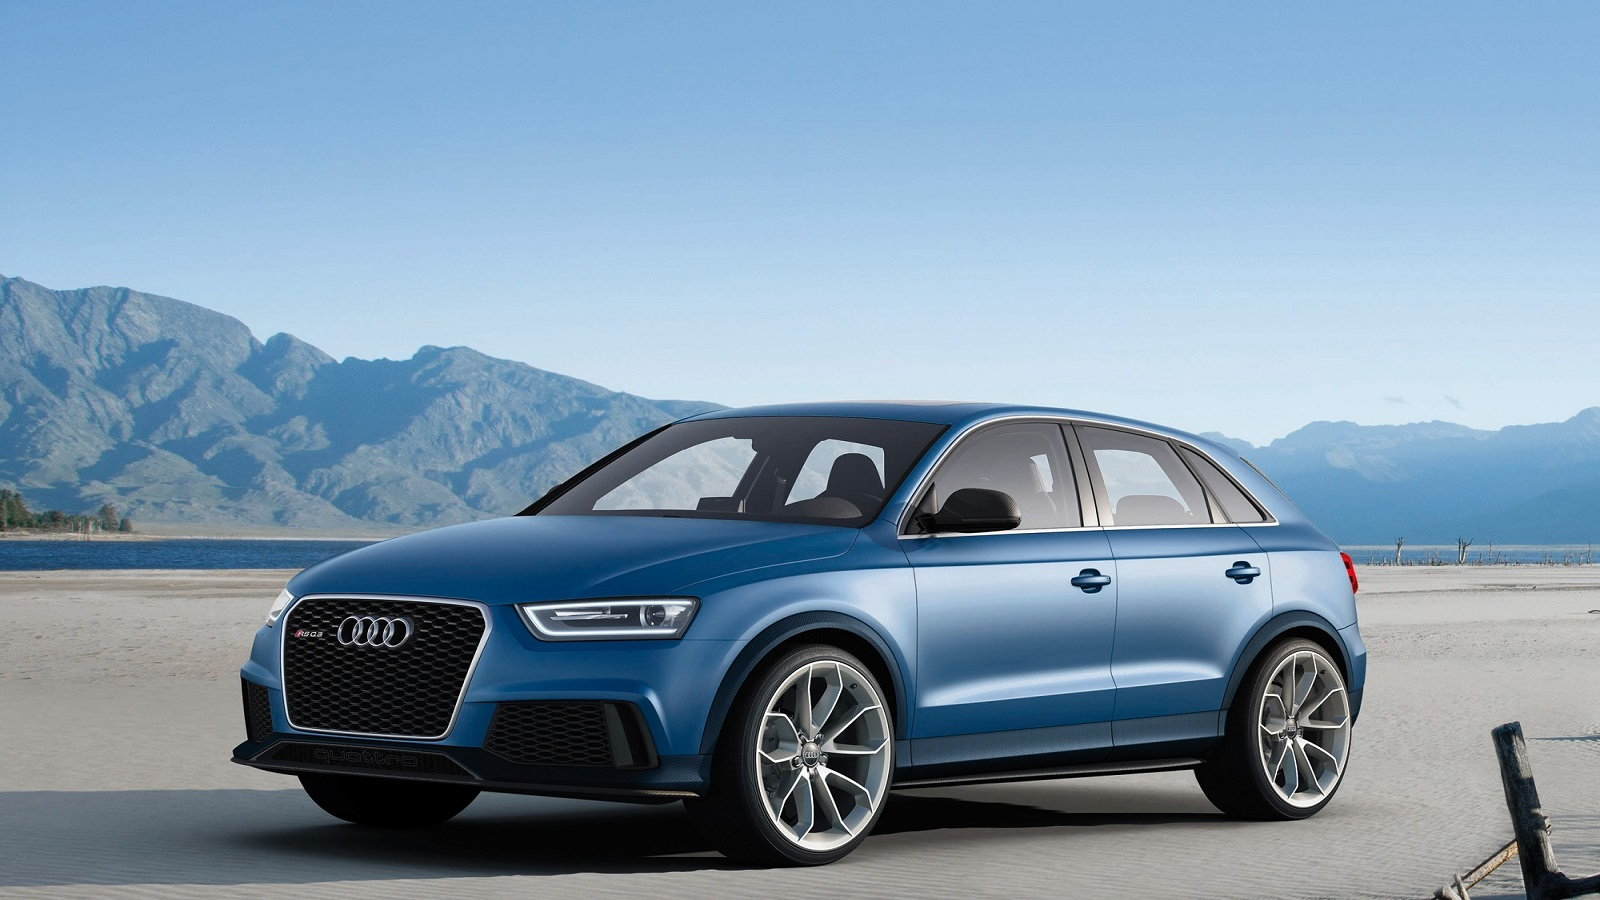 Things To Know About Your Audi Extended Warranty Audiworld - Audi extended warranty